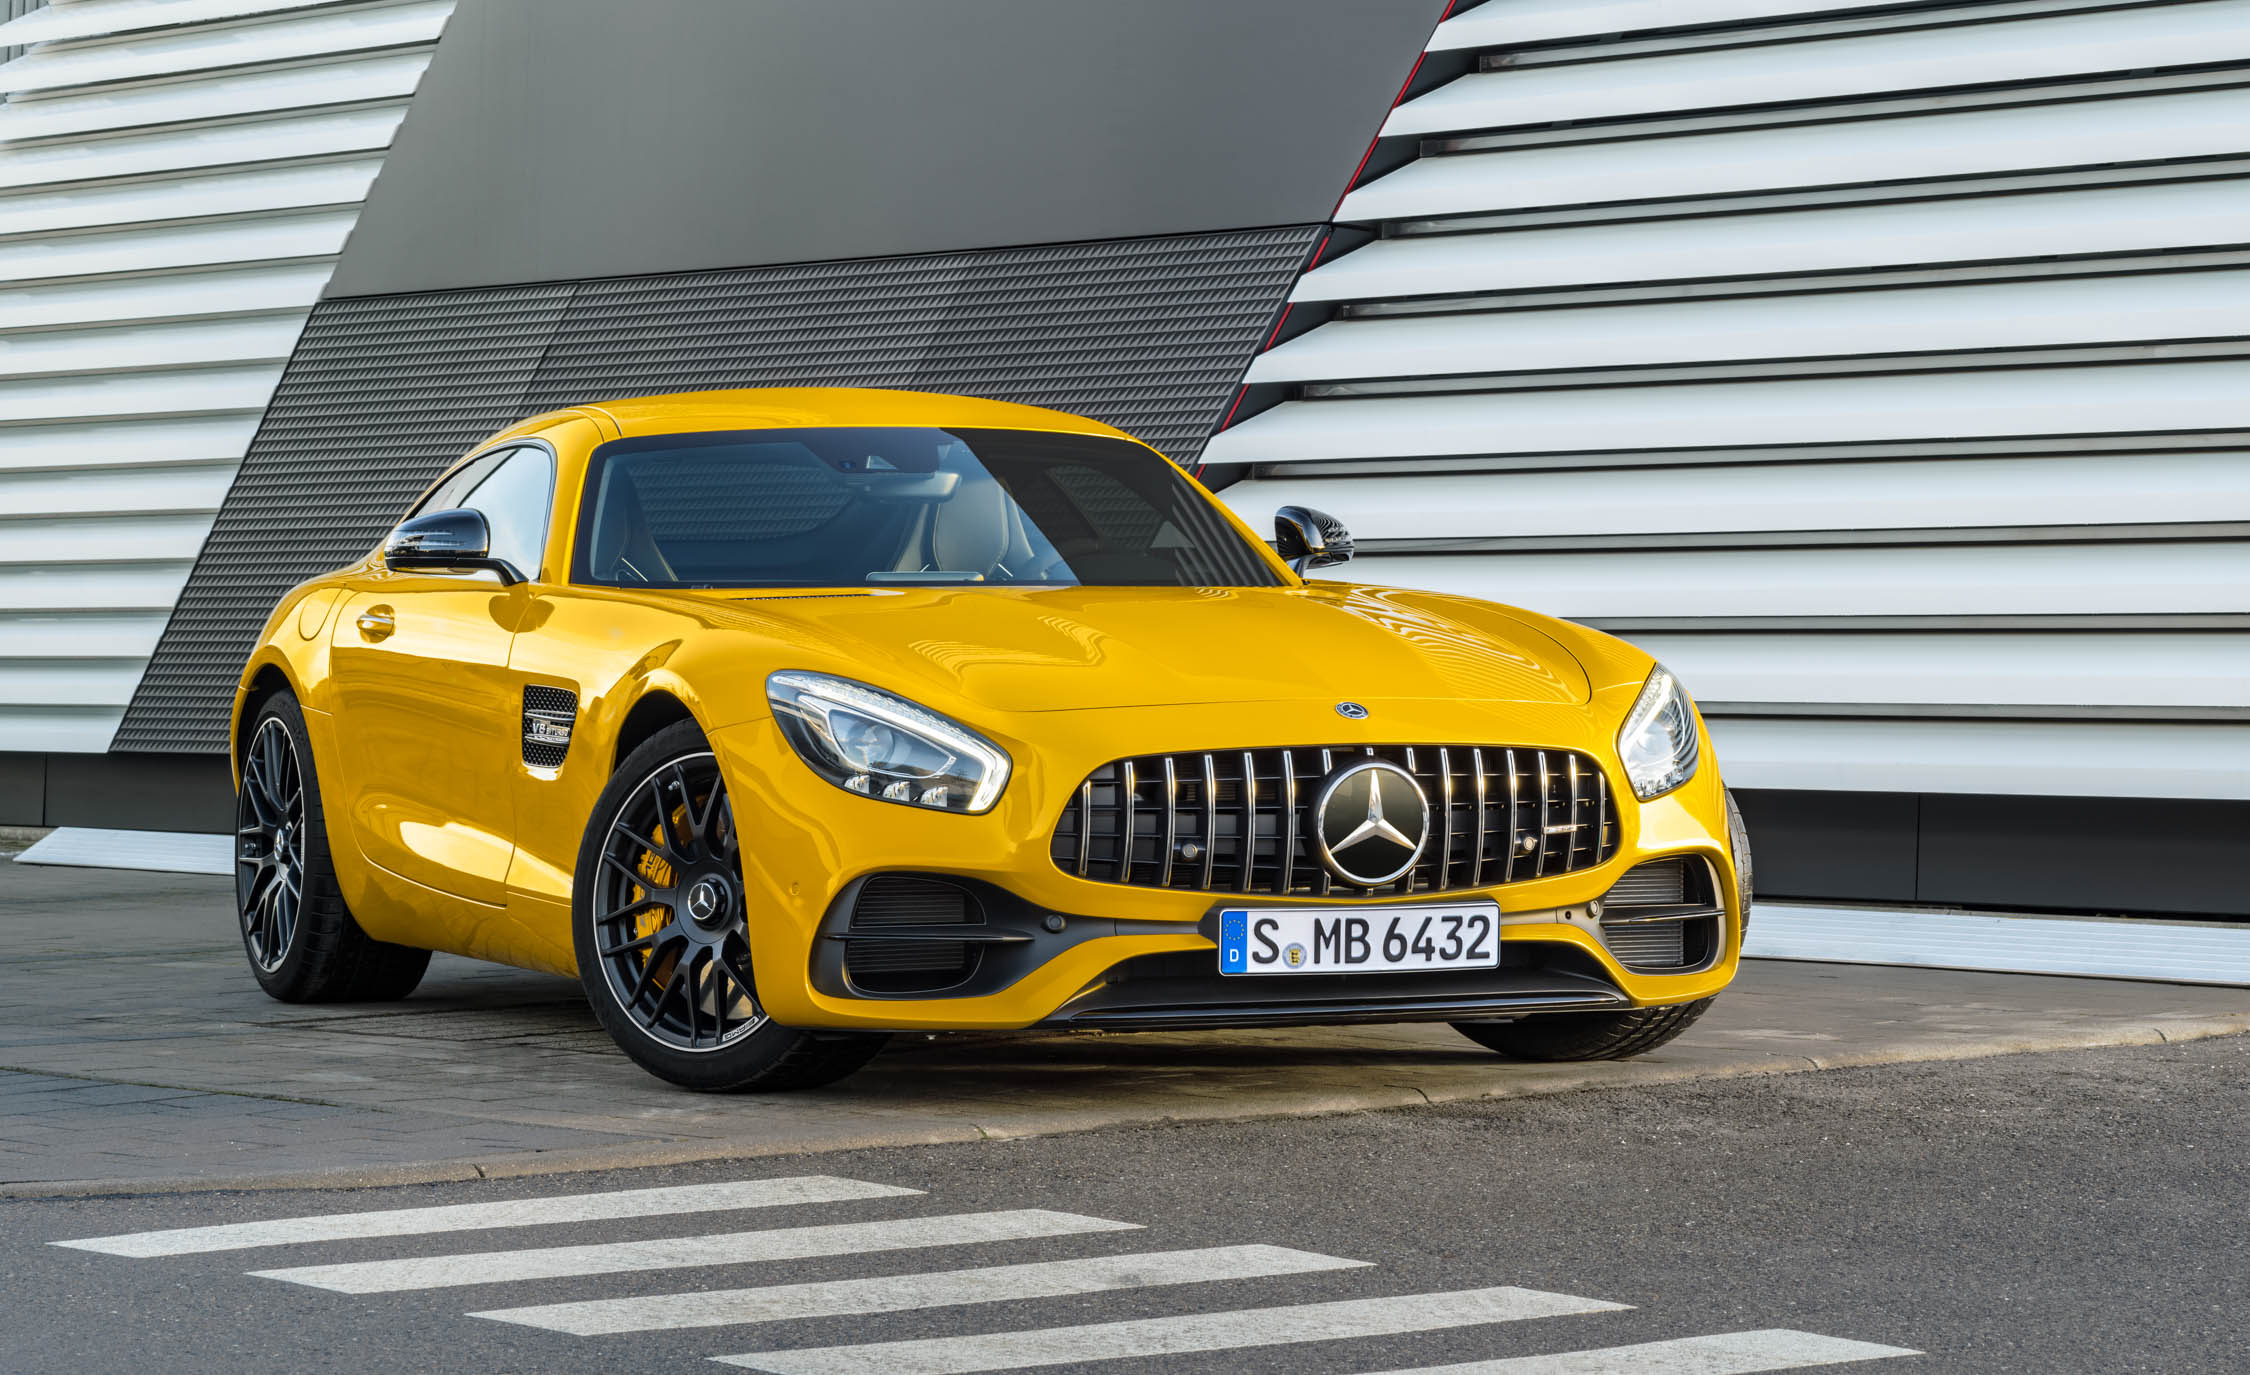 2018 Mercedes Amg Gt S Exterior Front And Side (Photo 19 of 23)